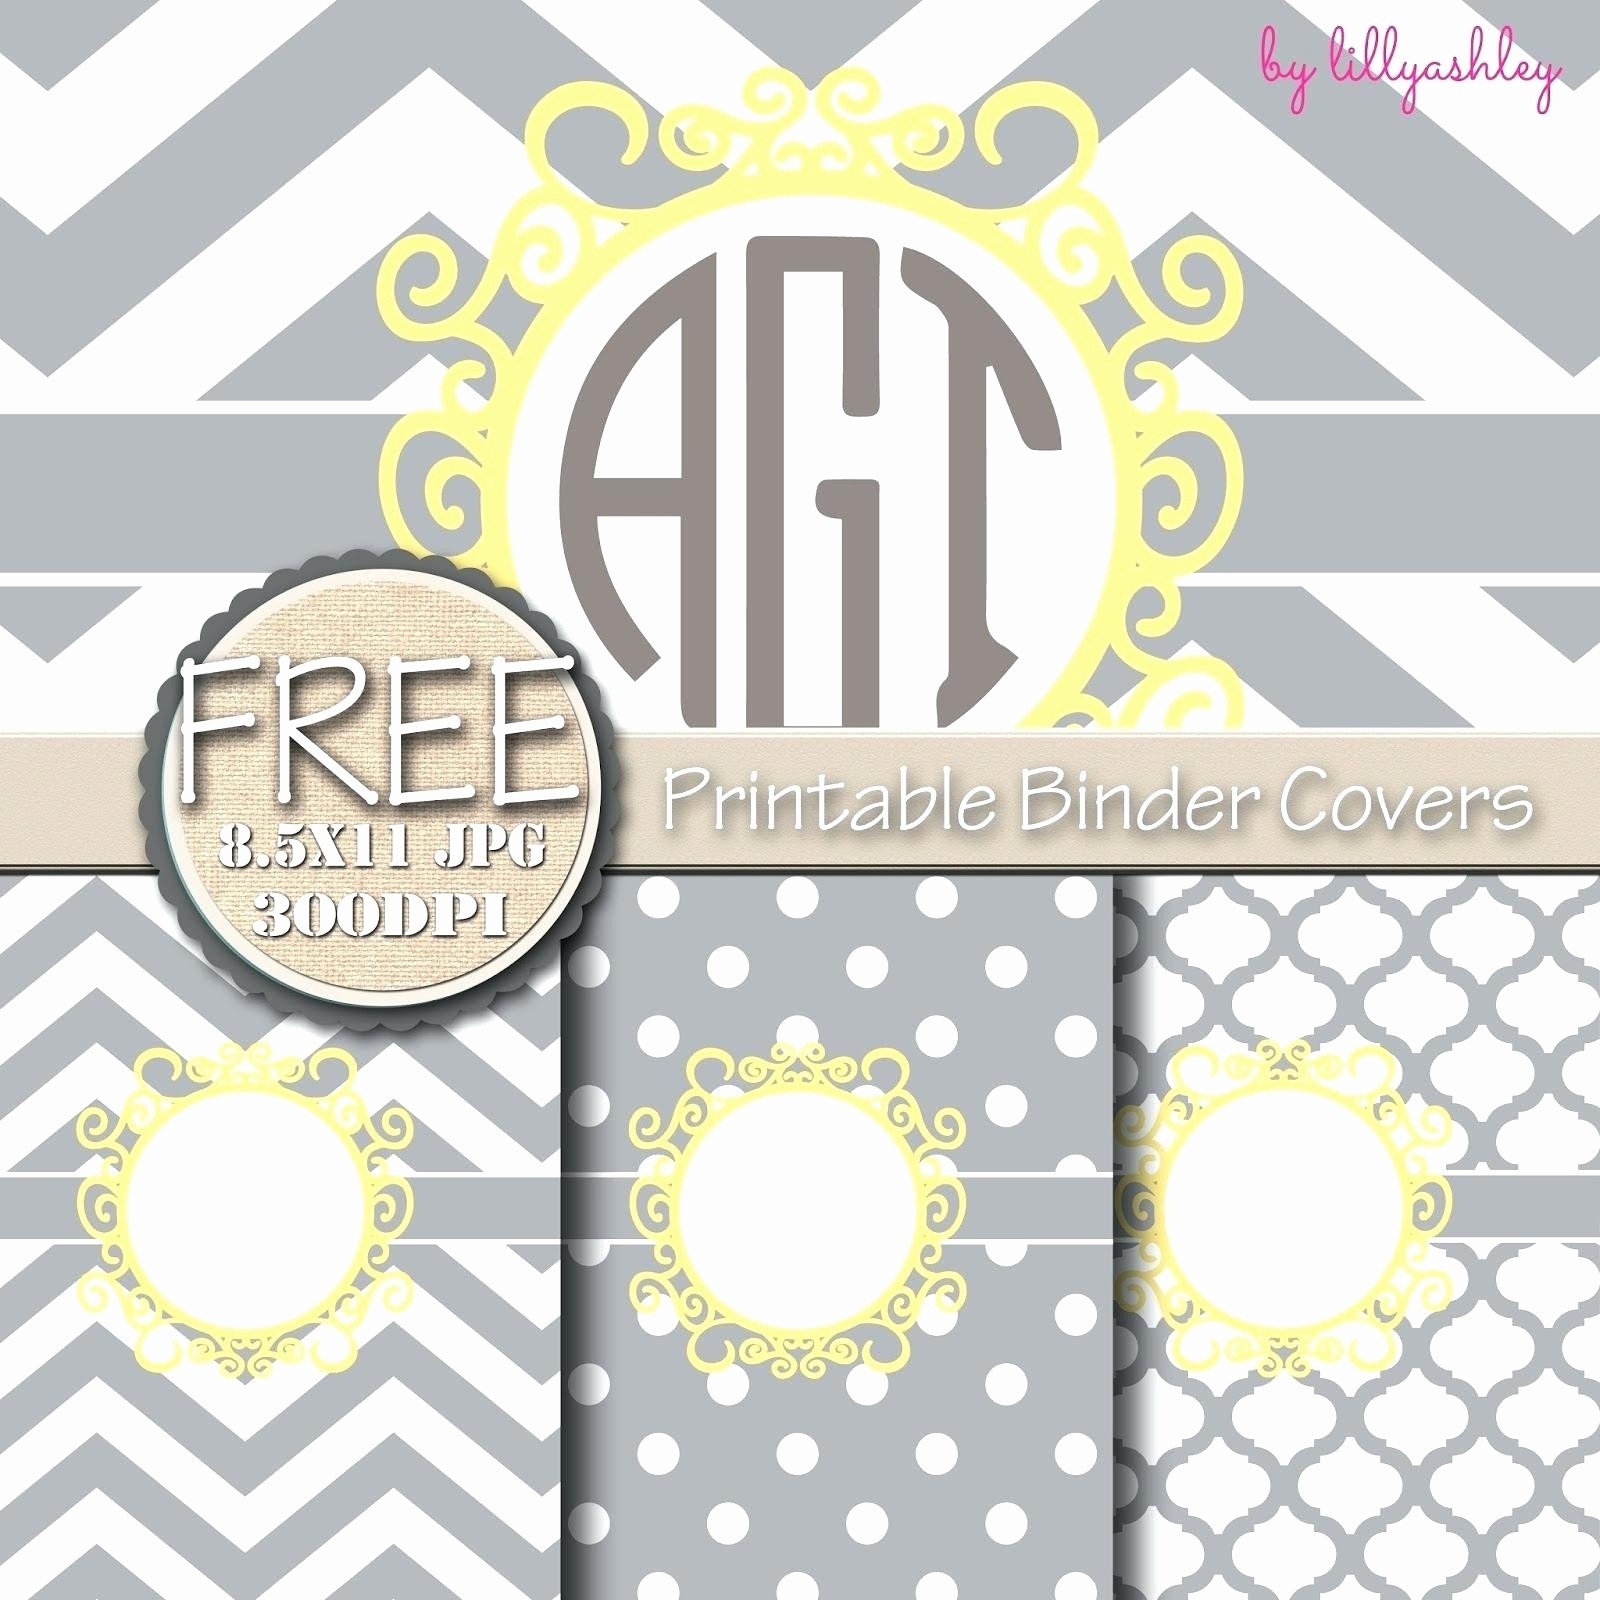 015 Template Ideas Printable Binder Cover Templates Wedding Page New - Free Editable Printable Binder Covers